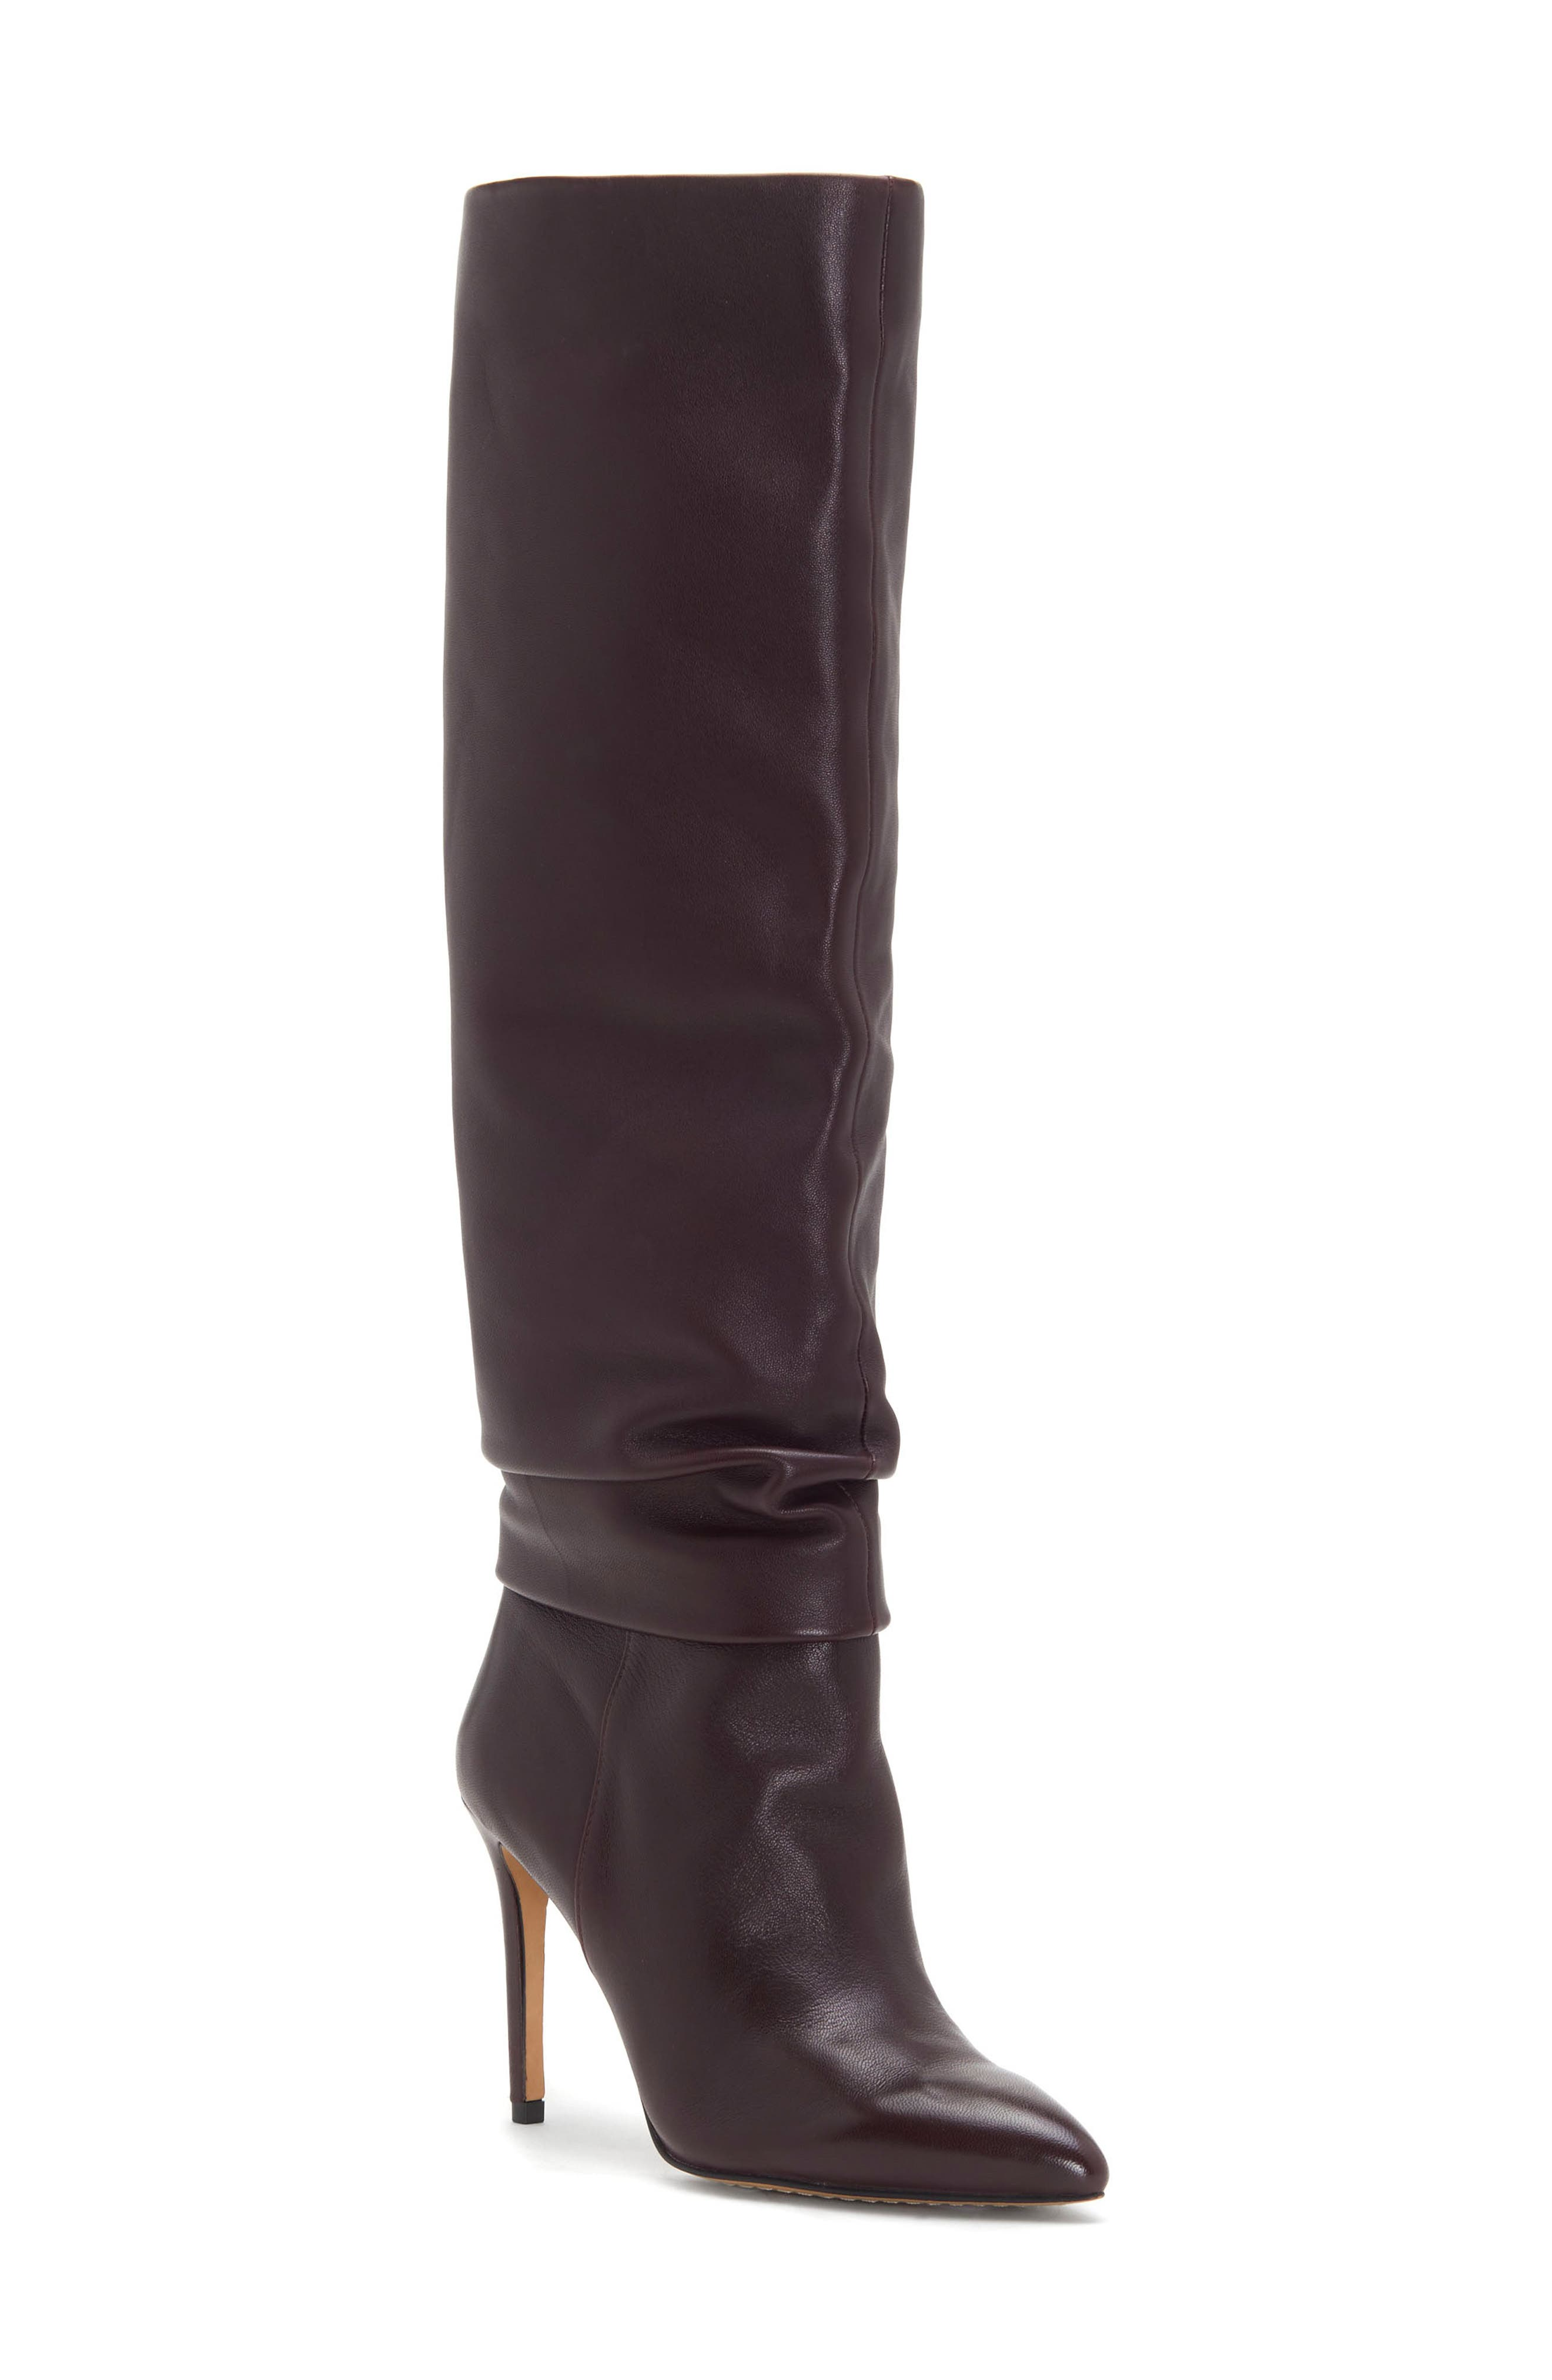 197c16675759 Vince Camuto Over-the-Knee Boots for Women